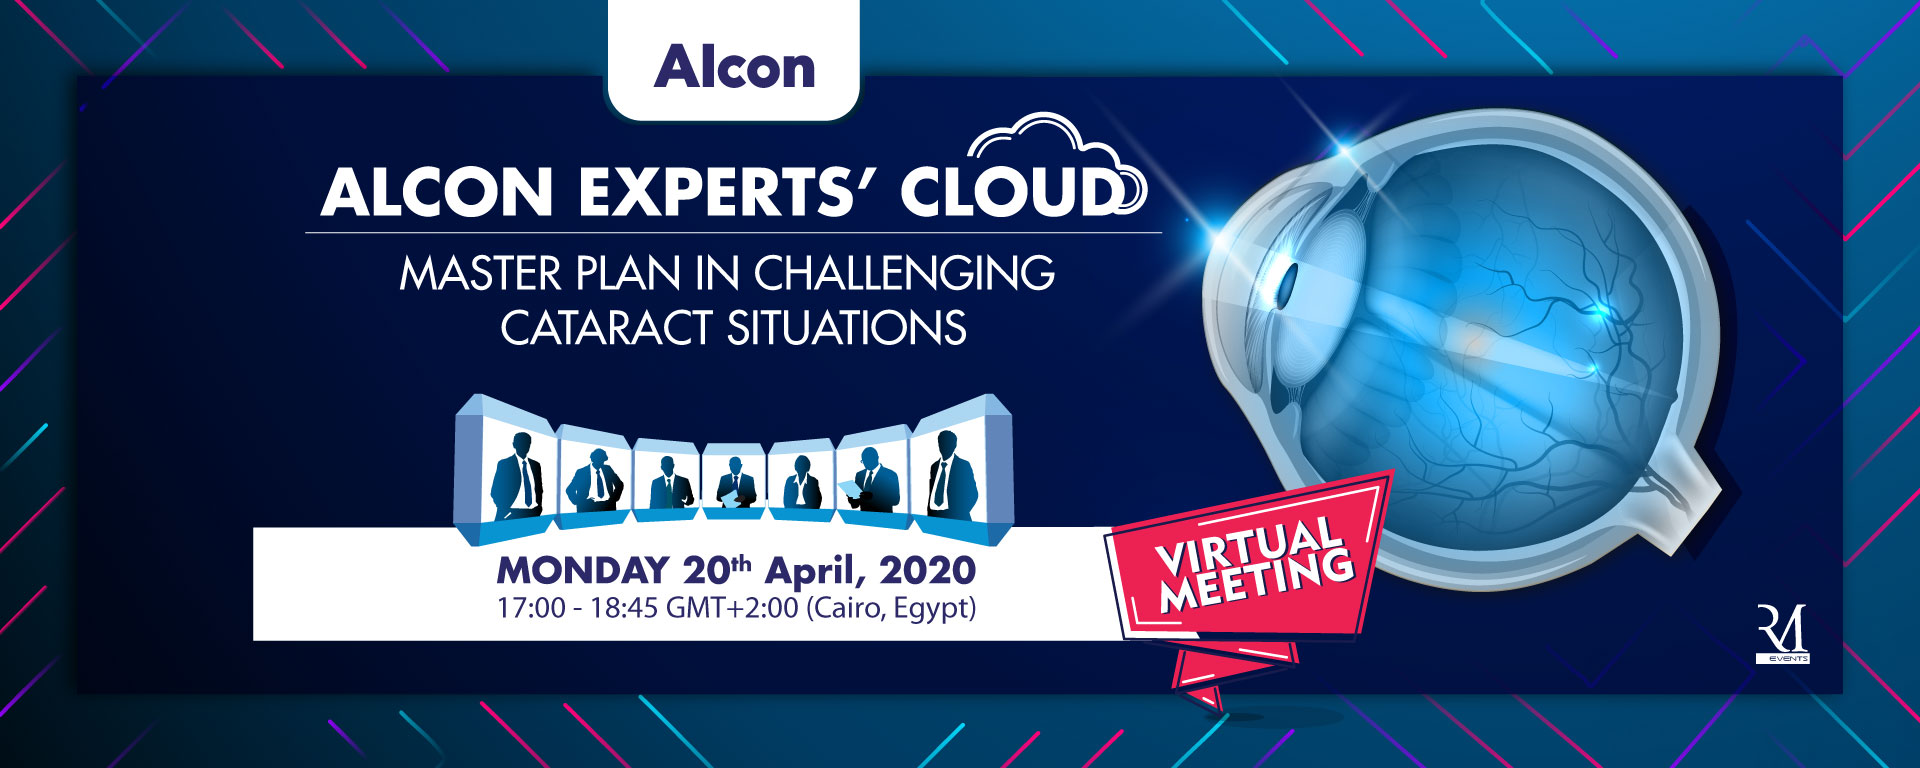 Alcon Experts' Cloud